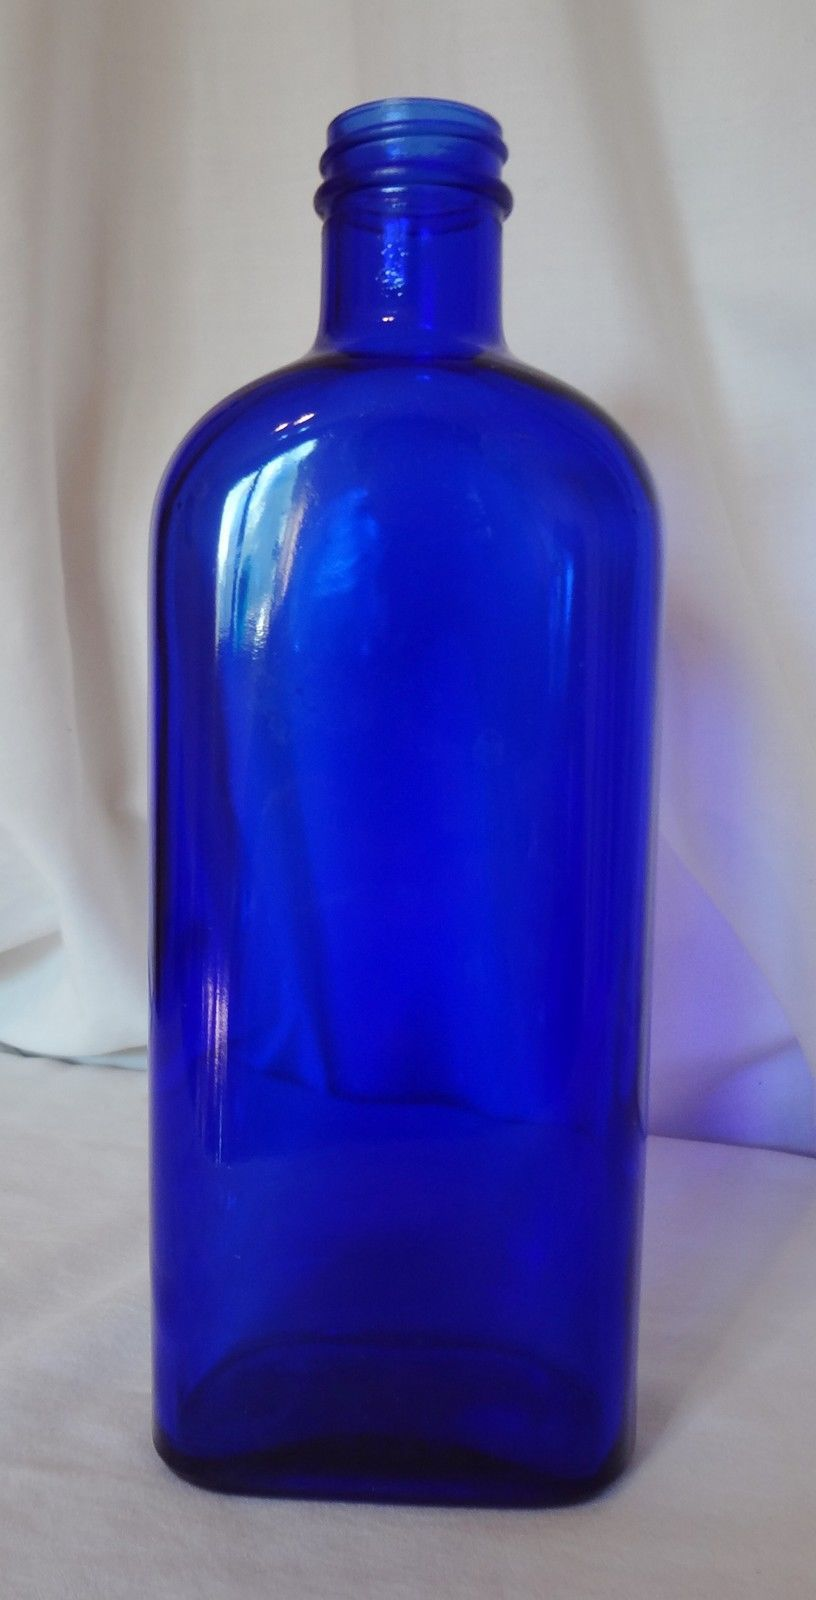 Cobalt Blue Glass Bottle Vintage Medicinal Apothecary 9 Inches Tall ...